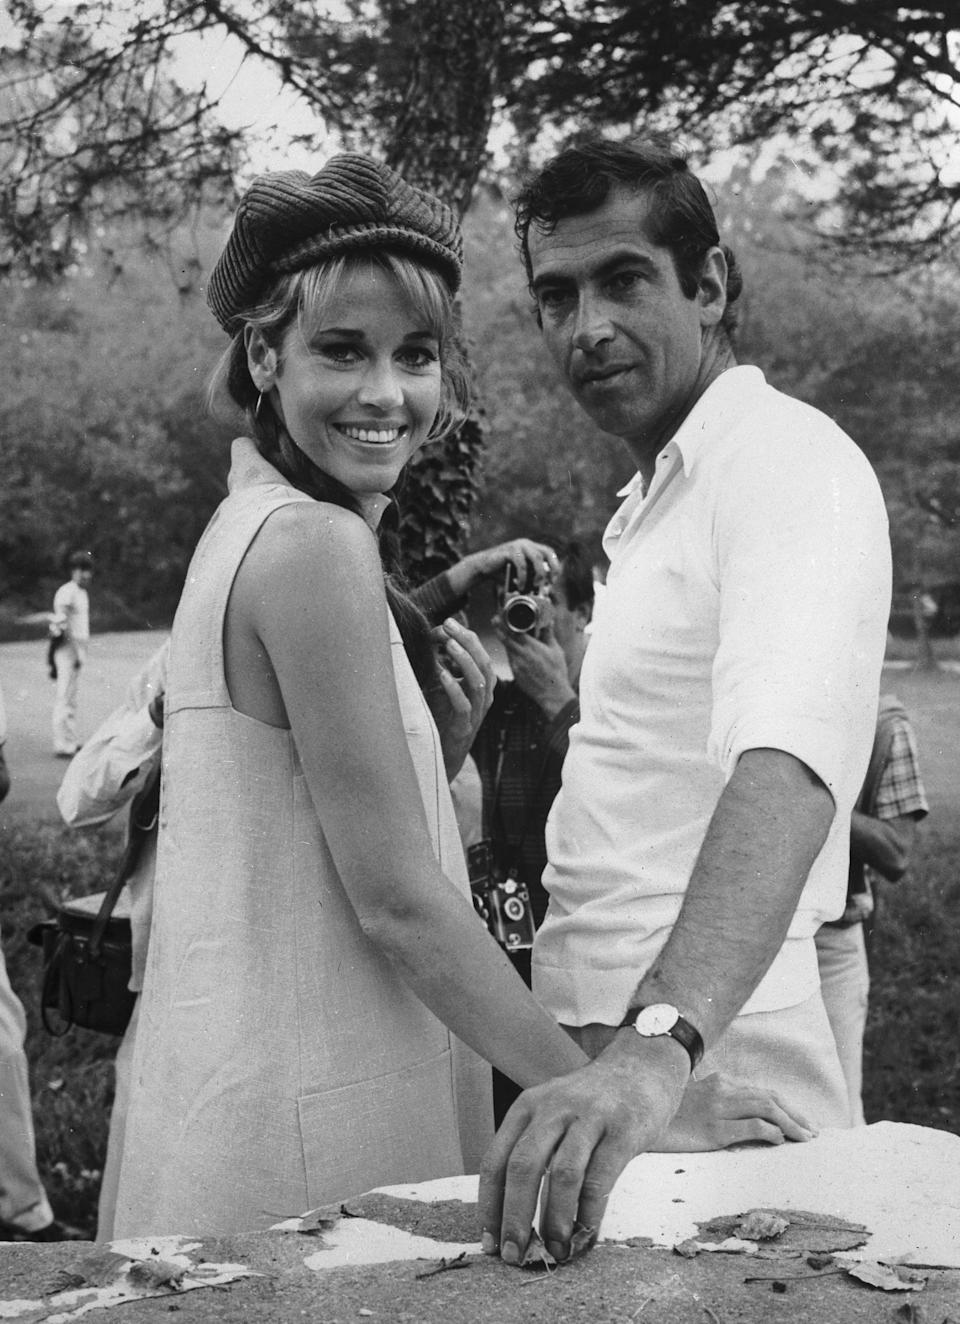 """<p>In August 1965, Jane married her first husband, <a rel=""""nofollow noopener"""" href=""""https://www.washingtonpost.com/archive/entertainment/books/1986/04/13/roger-vadim-an-eye-for-the-ladies/ed3a7b45-9d0f-4fe6-8144-4c8bf9bdaf00/?utm_term=.96f84717f54d"""" target=""""_blank"""" data-ylk=""""slk:prominent French film director Roger Vadim"""" class=""""link rapid-noclick-resp"""">prominent French film director Roger Vadim</a>. They tied the knot in a small ceremony at the Dunes Hotel in Las Vegas. At the time, Jane was 28; Roger was 10 years her senior and known for being a womanizer (Jane was actually his third wife). </p> <p>By the time he married Jane - who moved to Paris in the hopes of pivoting her reputation as the """"girl next door"""" to more serious, sexier roles - he had already had previous romances with other beautiful actresses like Brigitte Bardot and Cindy Pickett. He shared a son with French screen siren Catherine Deneuve, and a daughter, Nathalie, from a previous marriage with Danish actress Annette Stroyberg. Nathalie and Jane formed a sweet bond, and the then-teenager considered her a strong mother figure.</p>"""